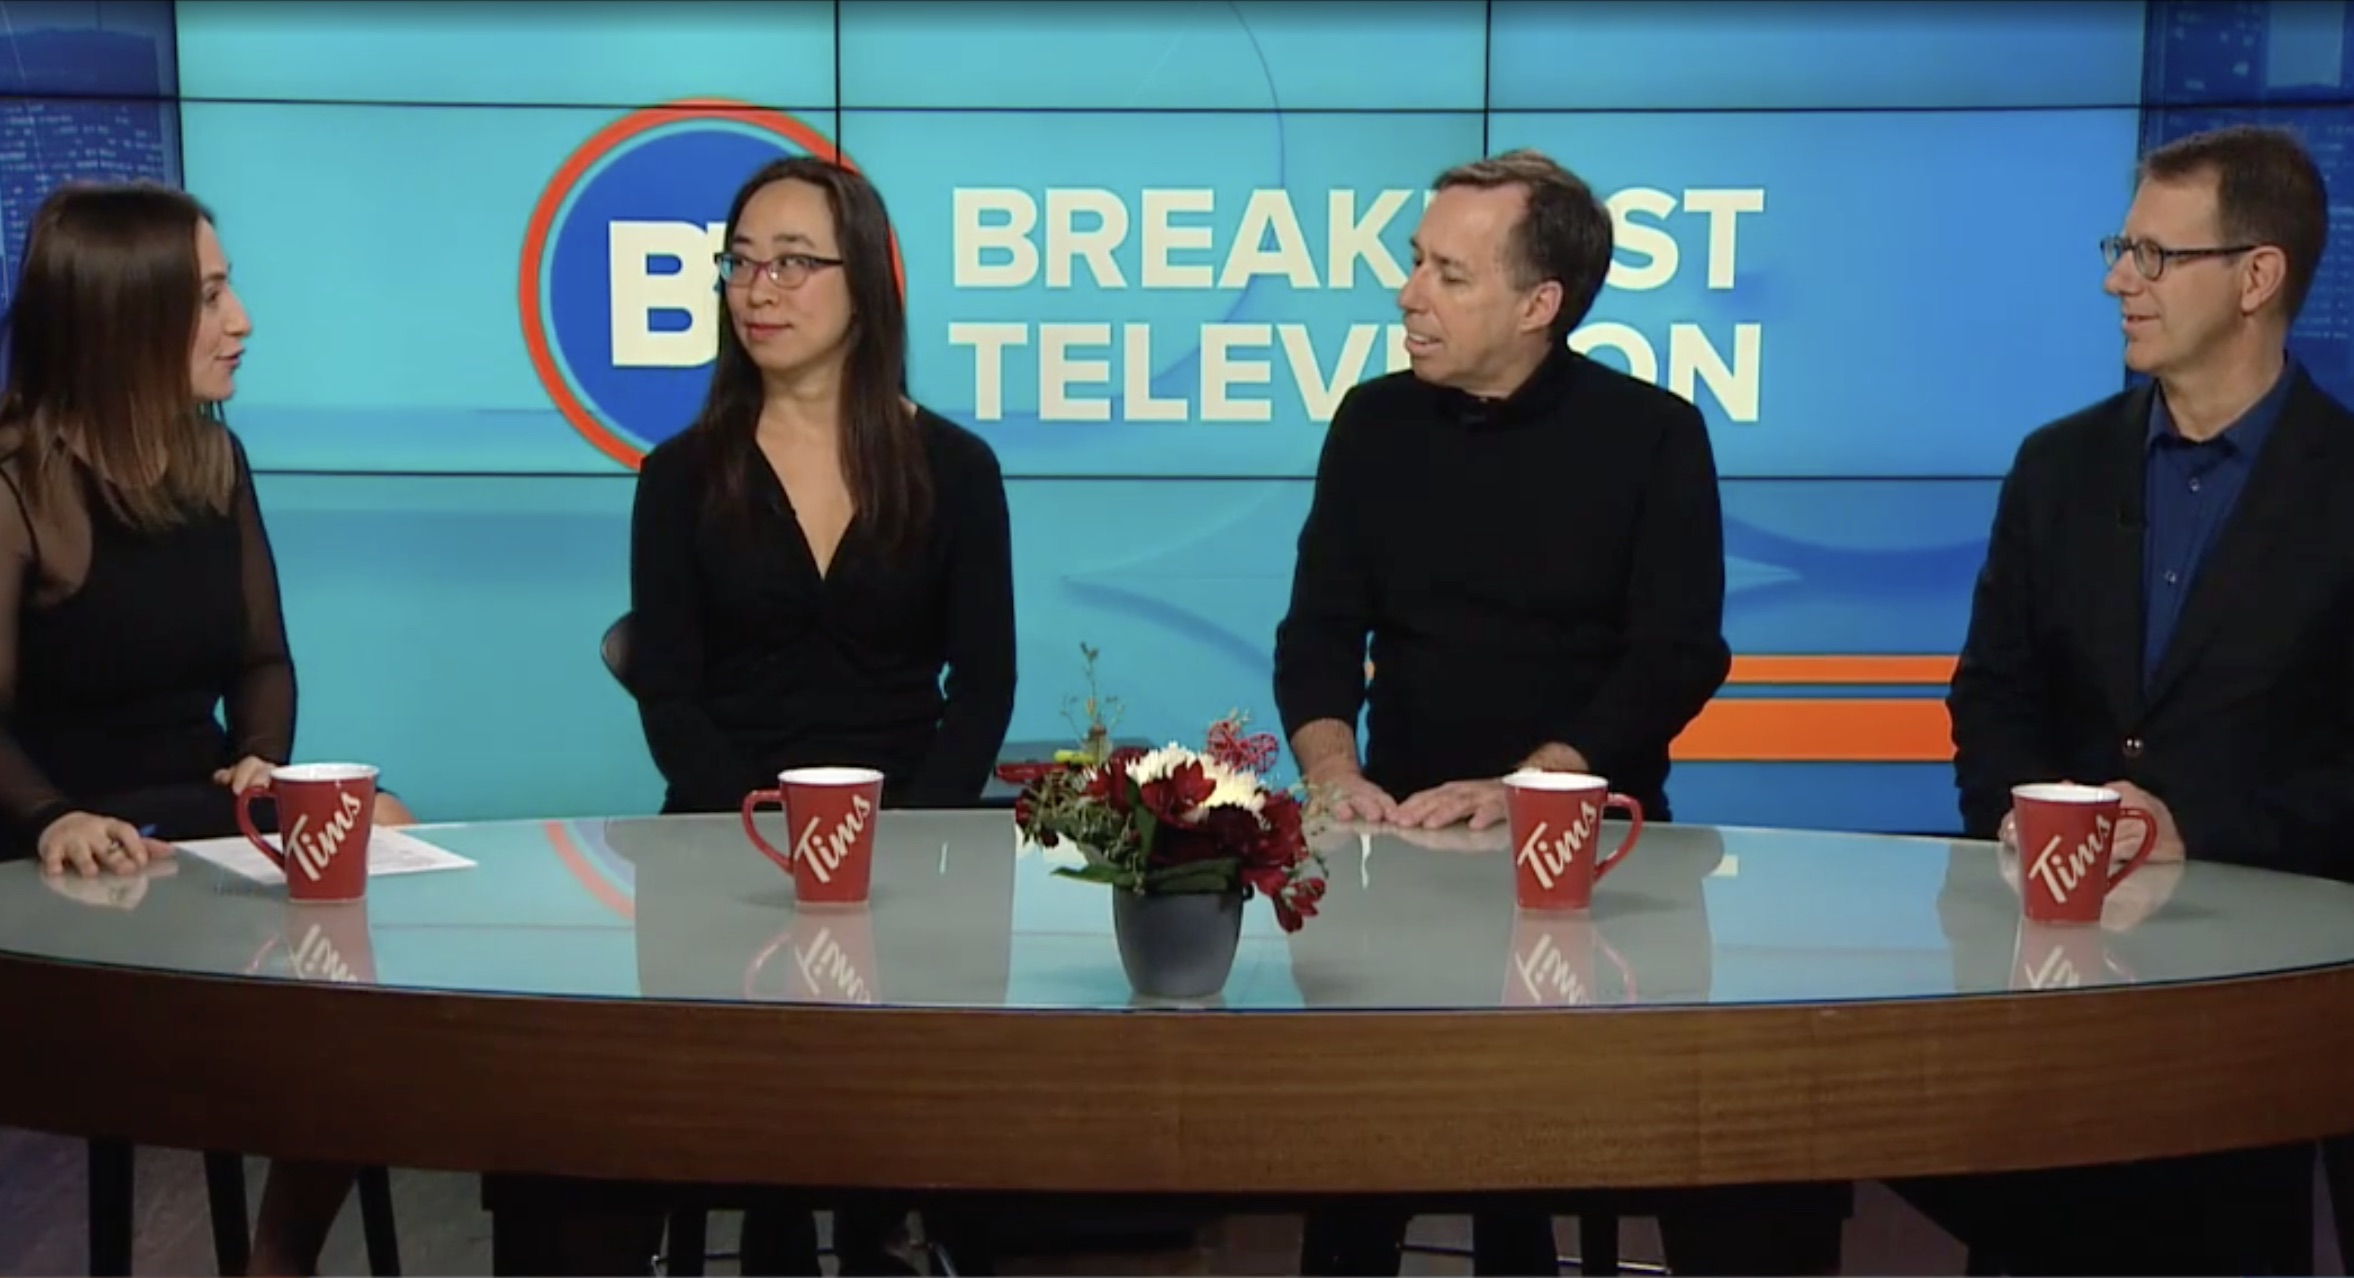 Awards of Excellence, Elsa Lam, Breakfast Television Montreal